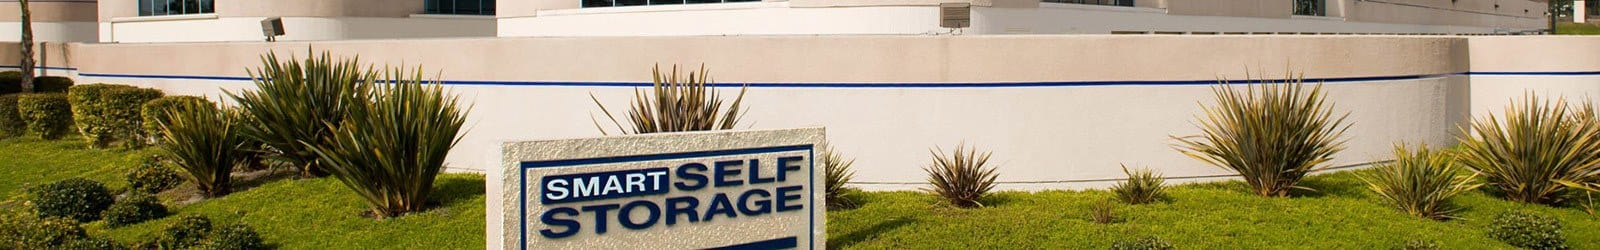 Smart Self Storage of Eastlake Boat and RV Storage